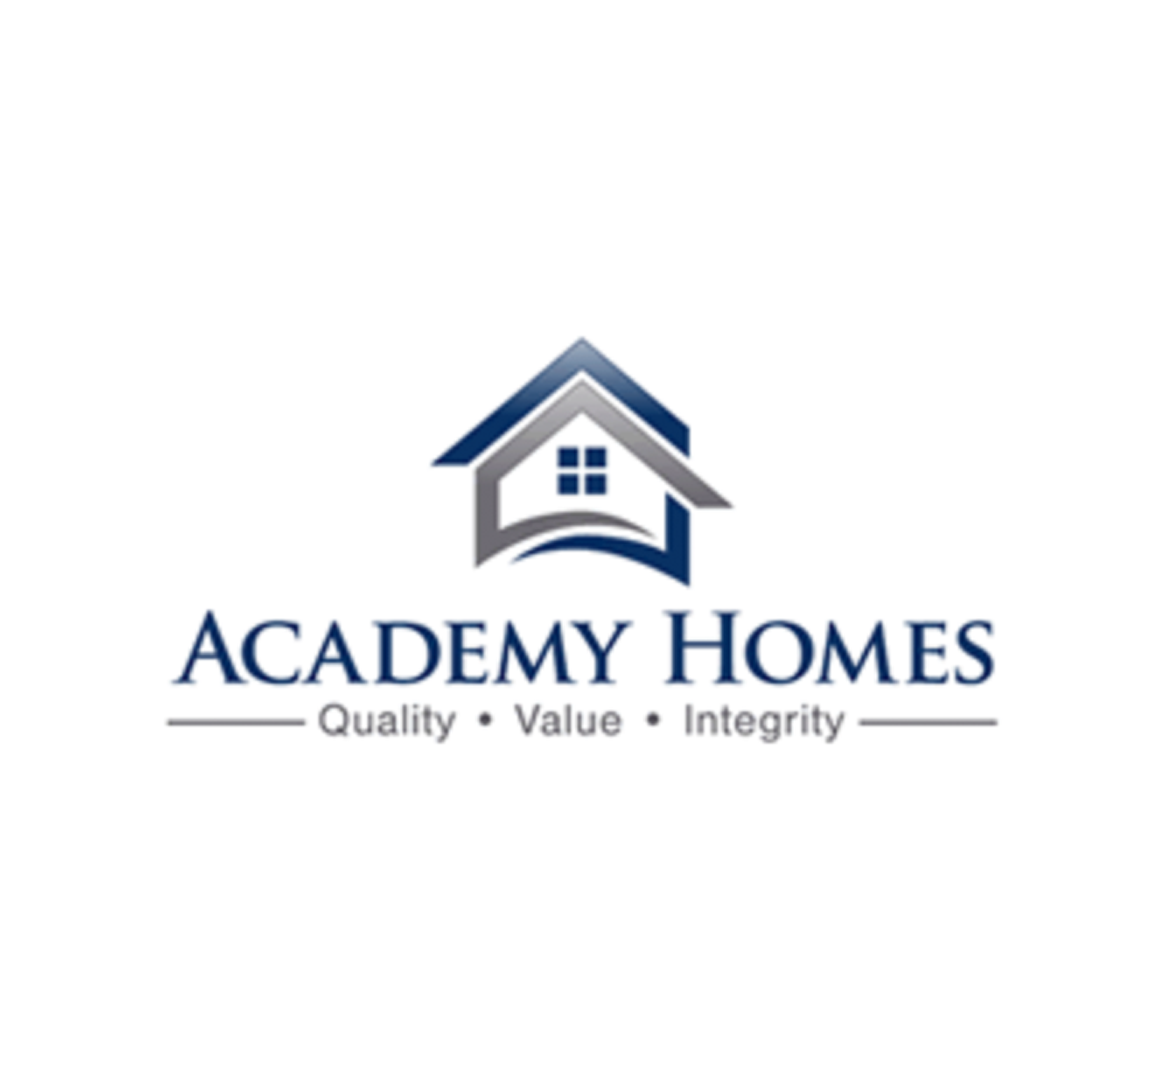 Academy Homes